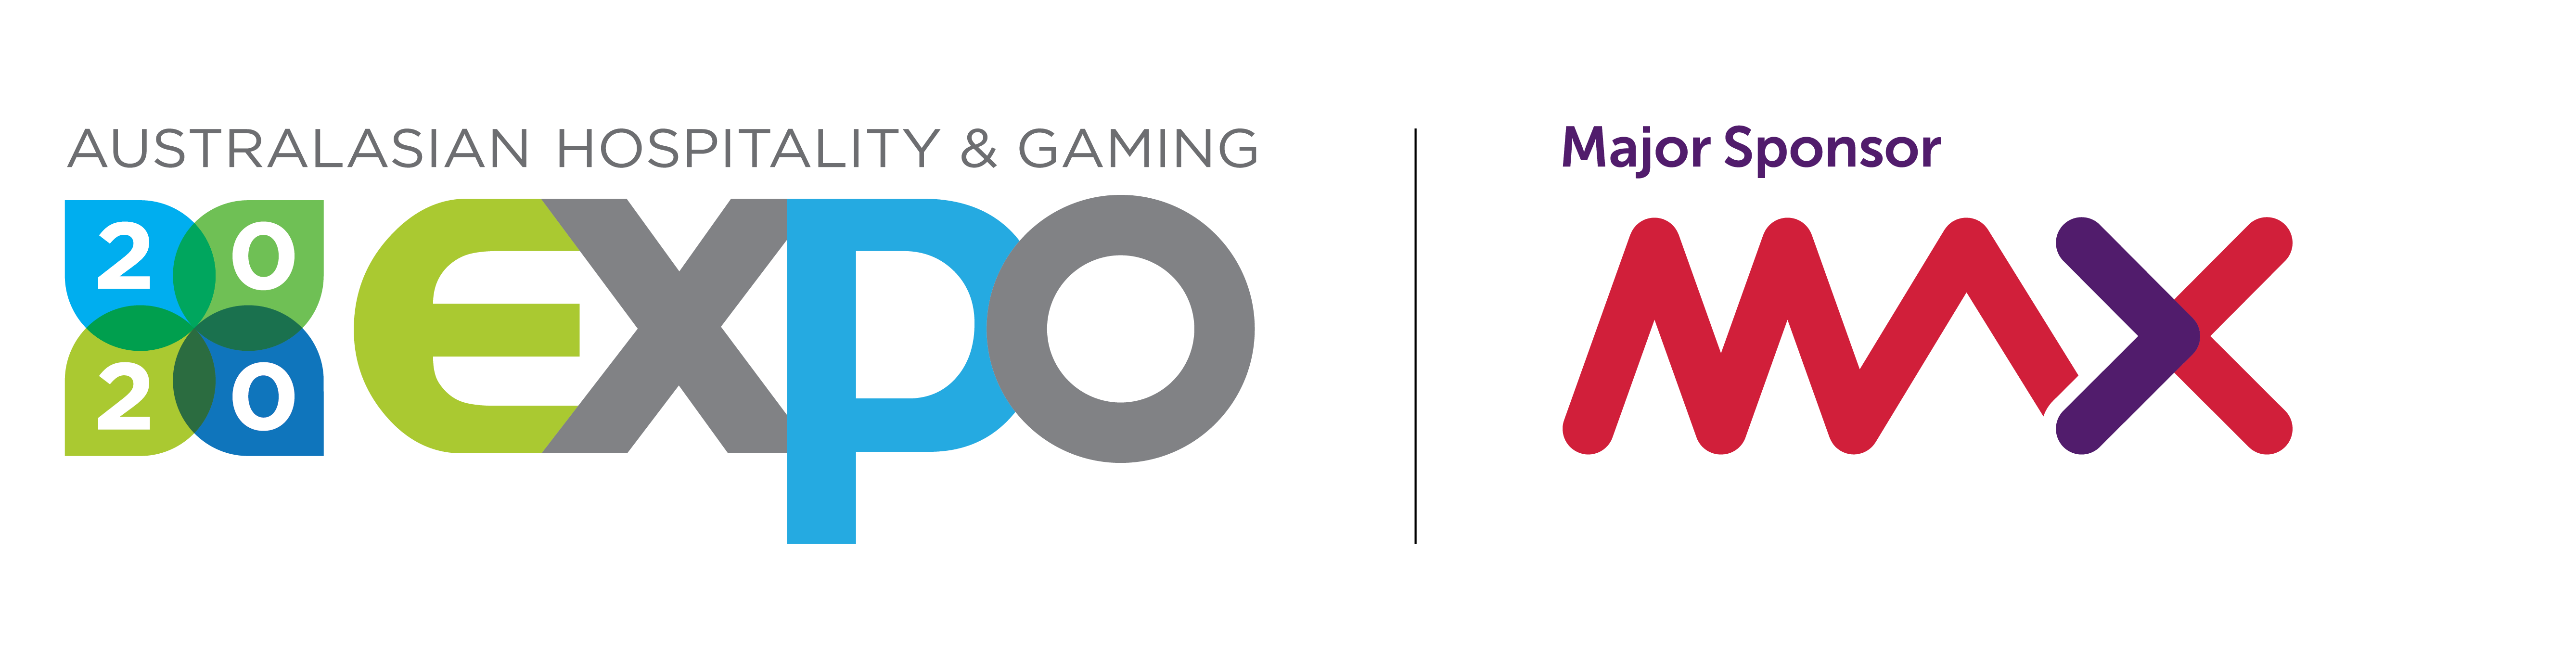 Australasian Hospitality and Gaming Expo